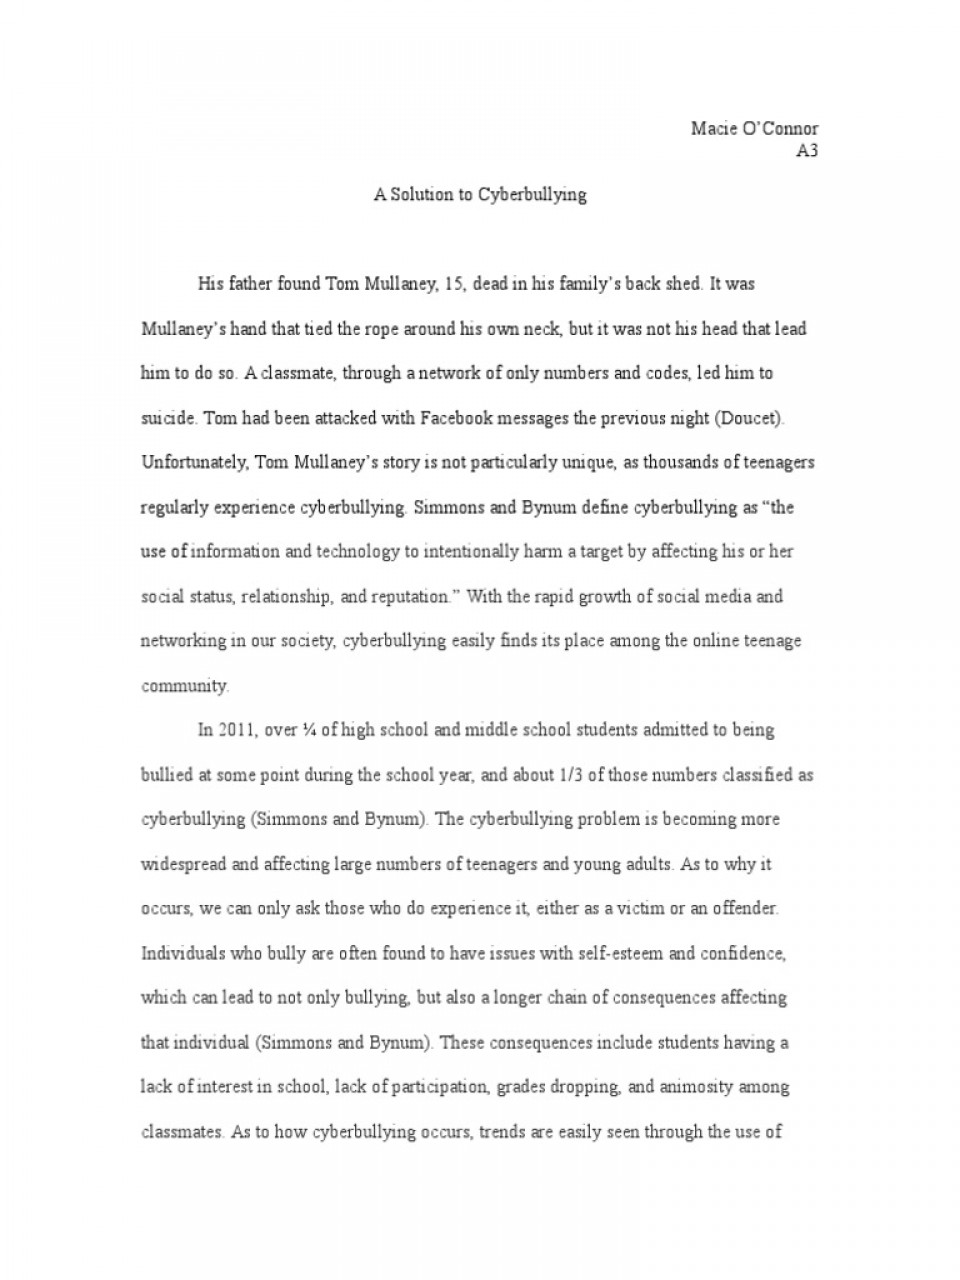 008 Essay Example Bullying Problem Solution Cyberbullying Communication How To Stop In Schools High School Avoid At Deal With Ways Prevent Awful Topics Cyber Titles Persuasive Ideas 960